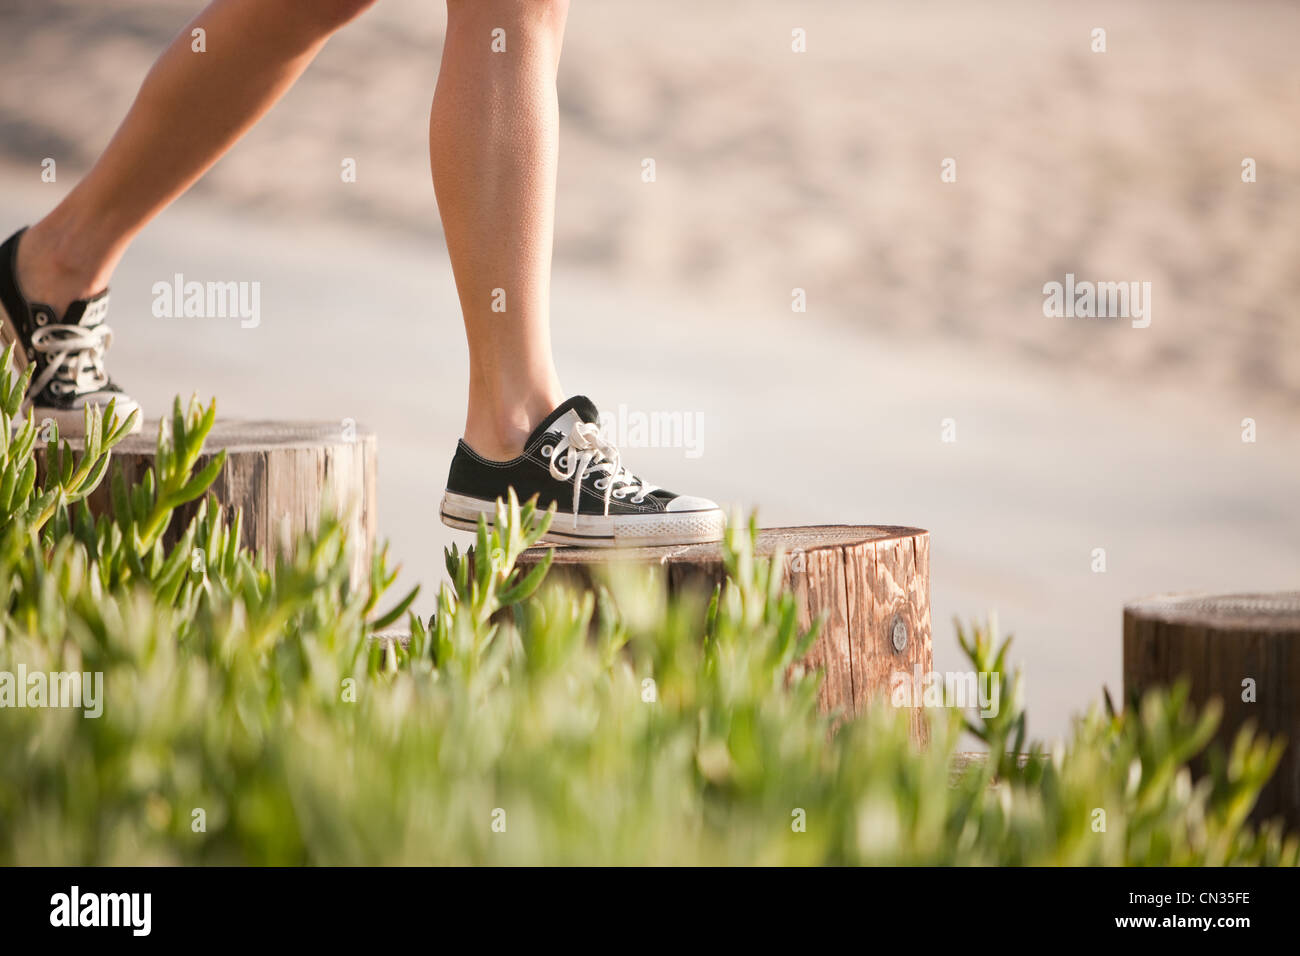 Young woman walking on wooden posts - Stock Image